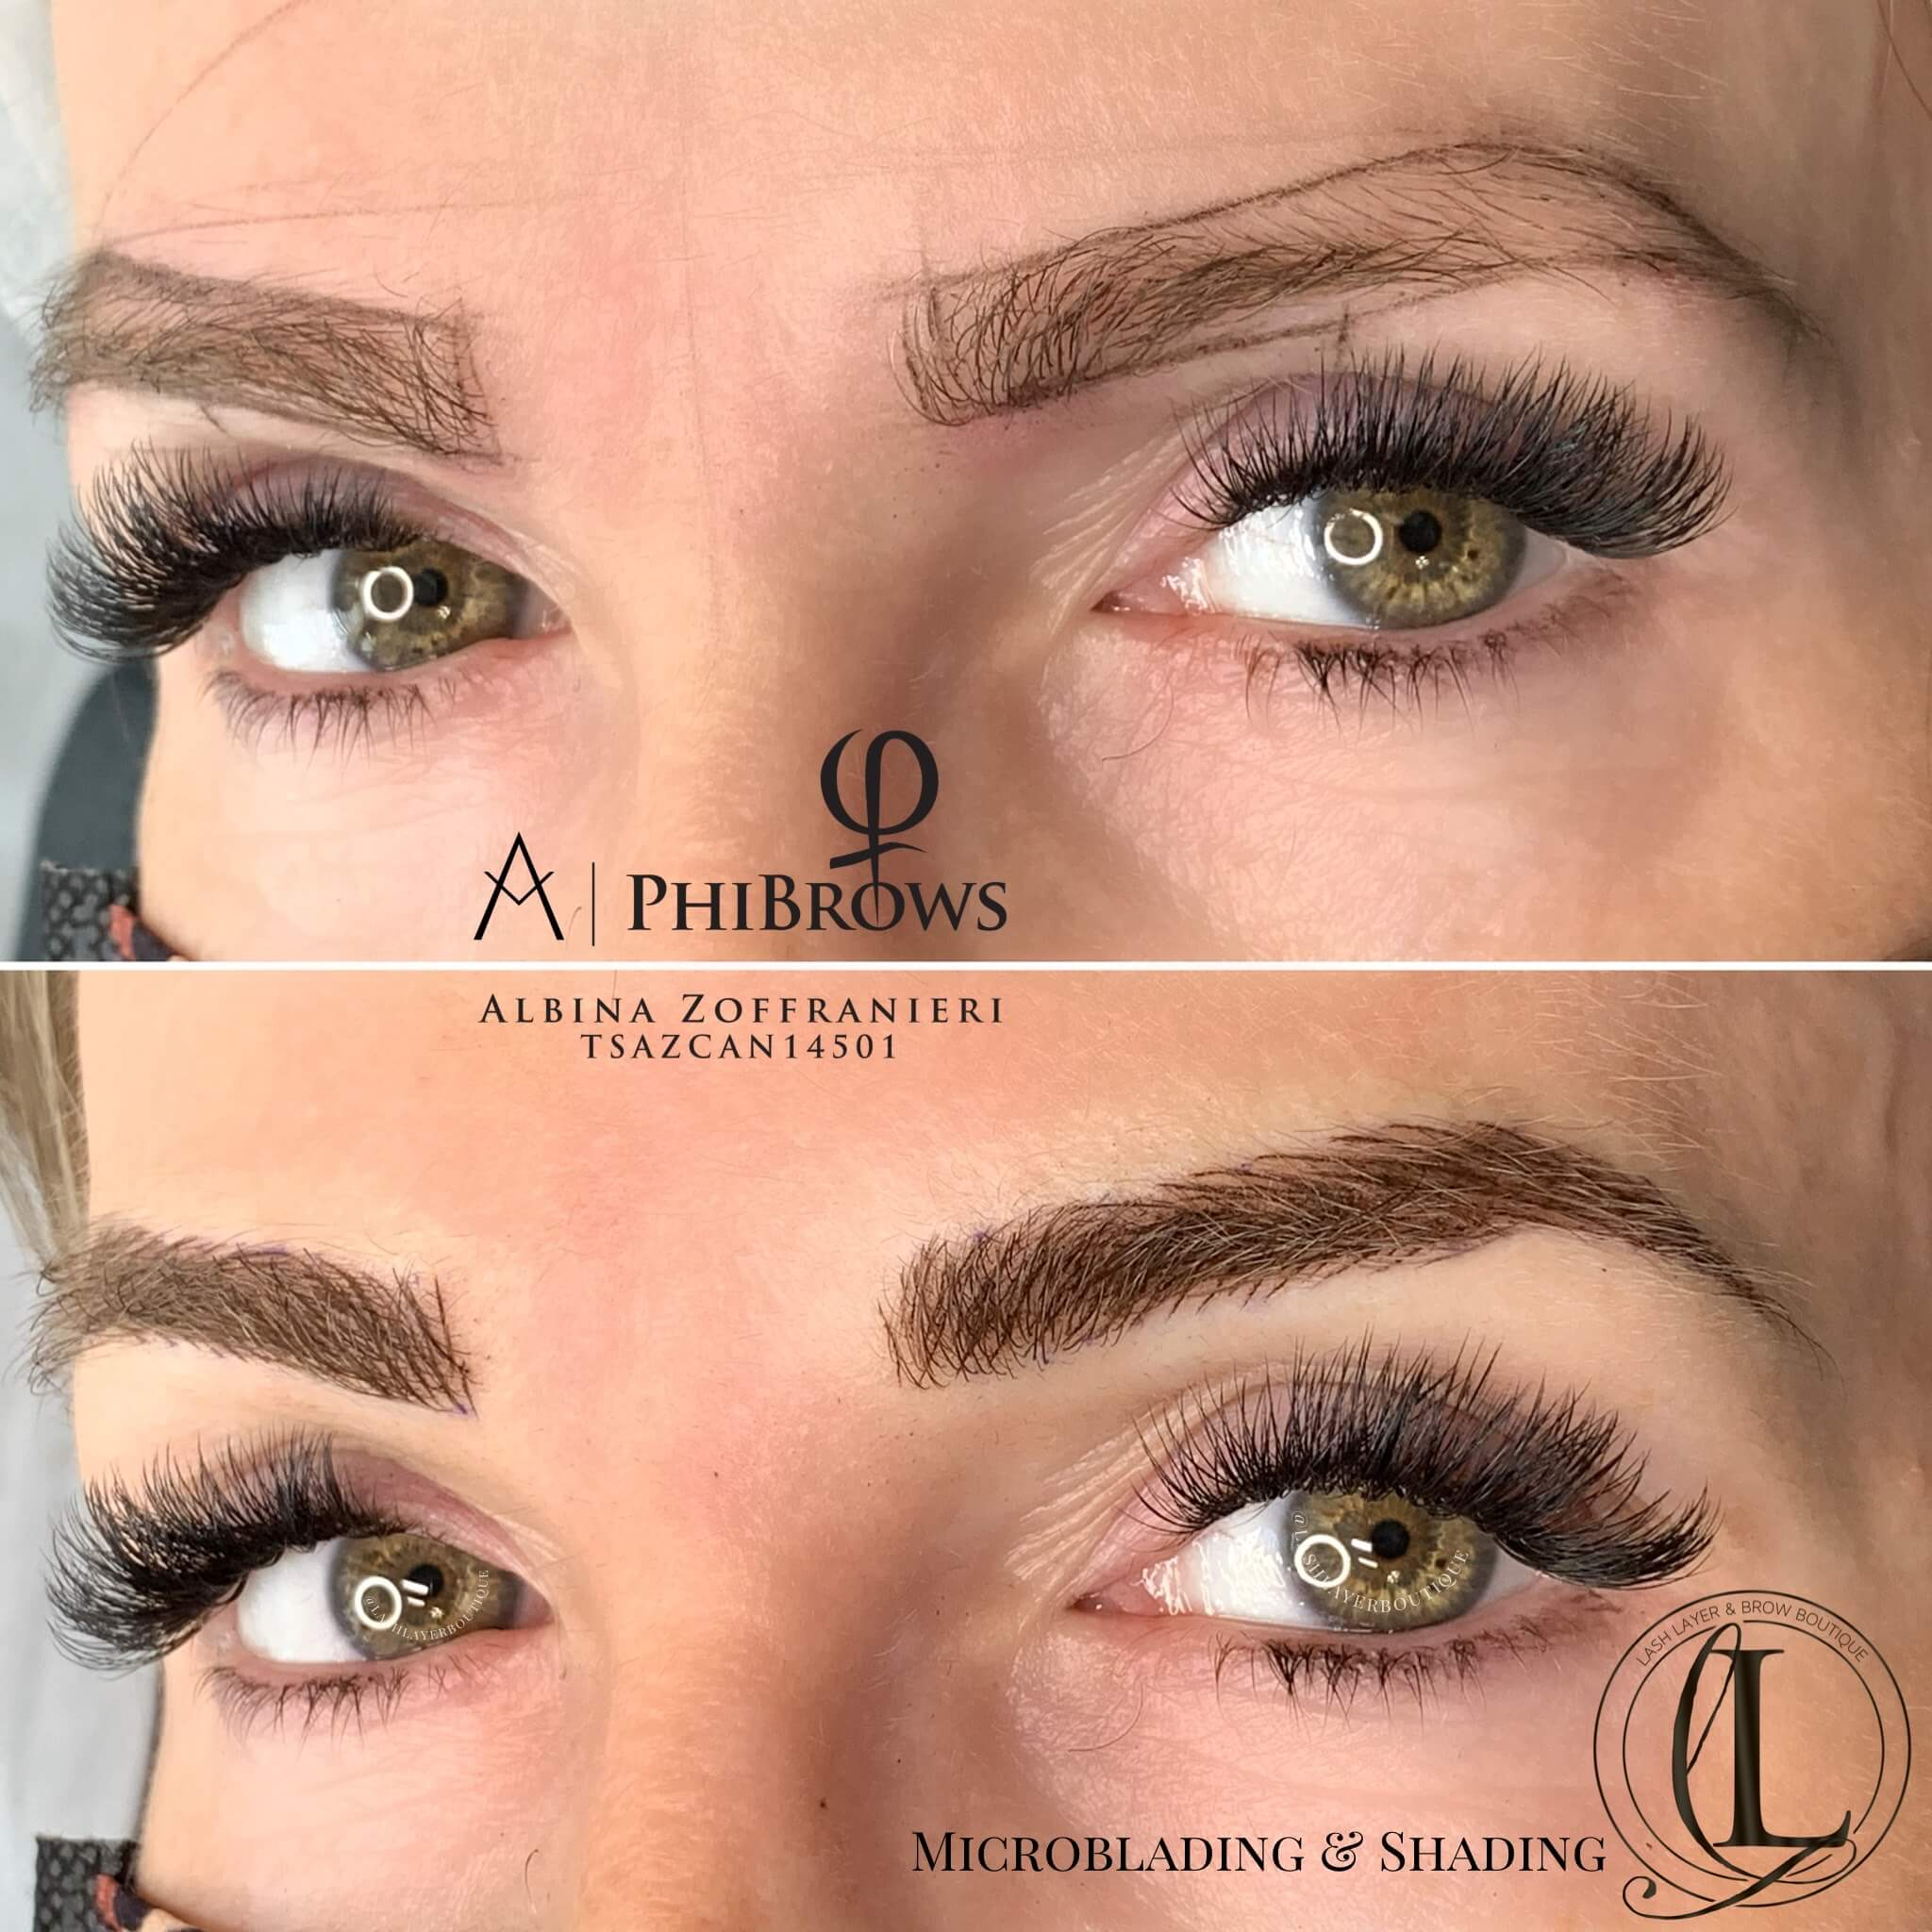 Natural Eyebrows Microblading with Soft Arches | Pickering, ON